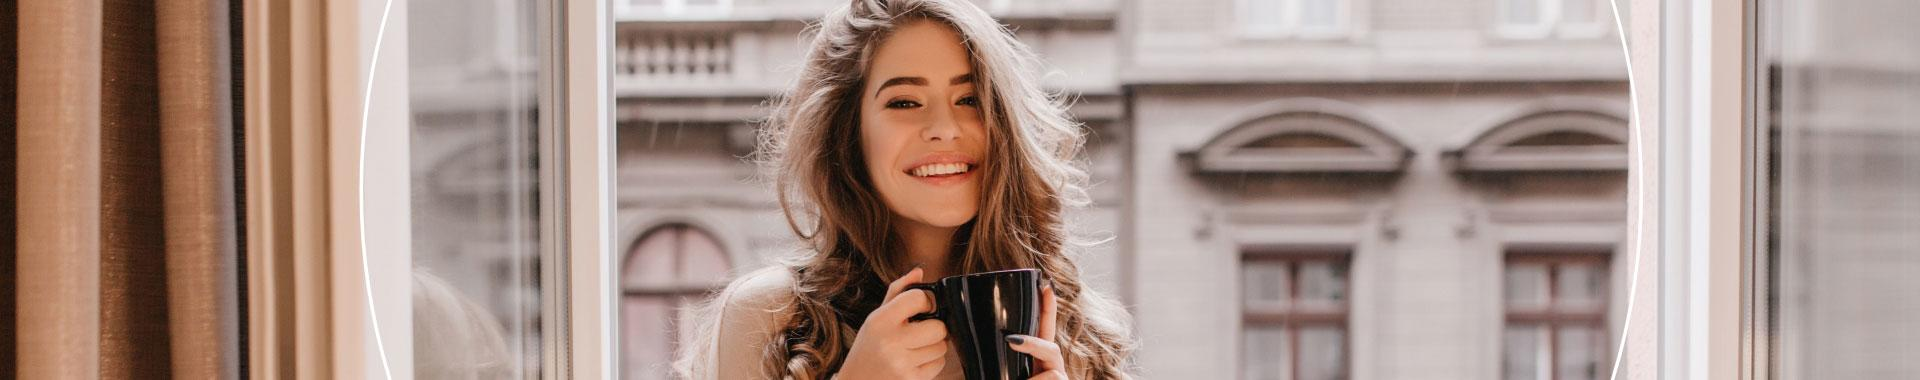 Woman standing in window with a hot drink in hand, smiling.